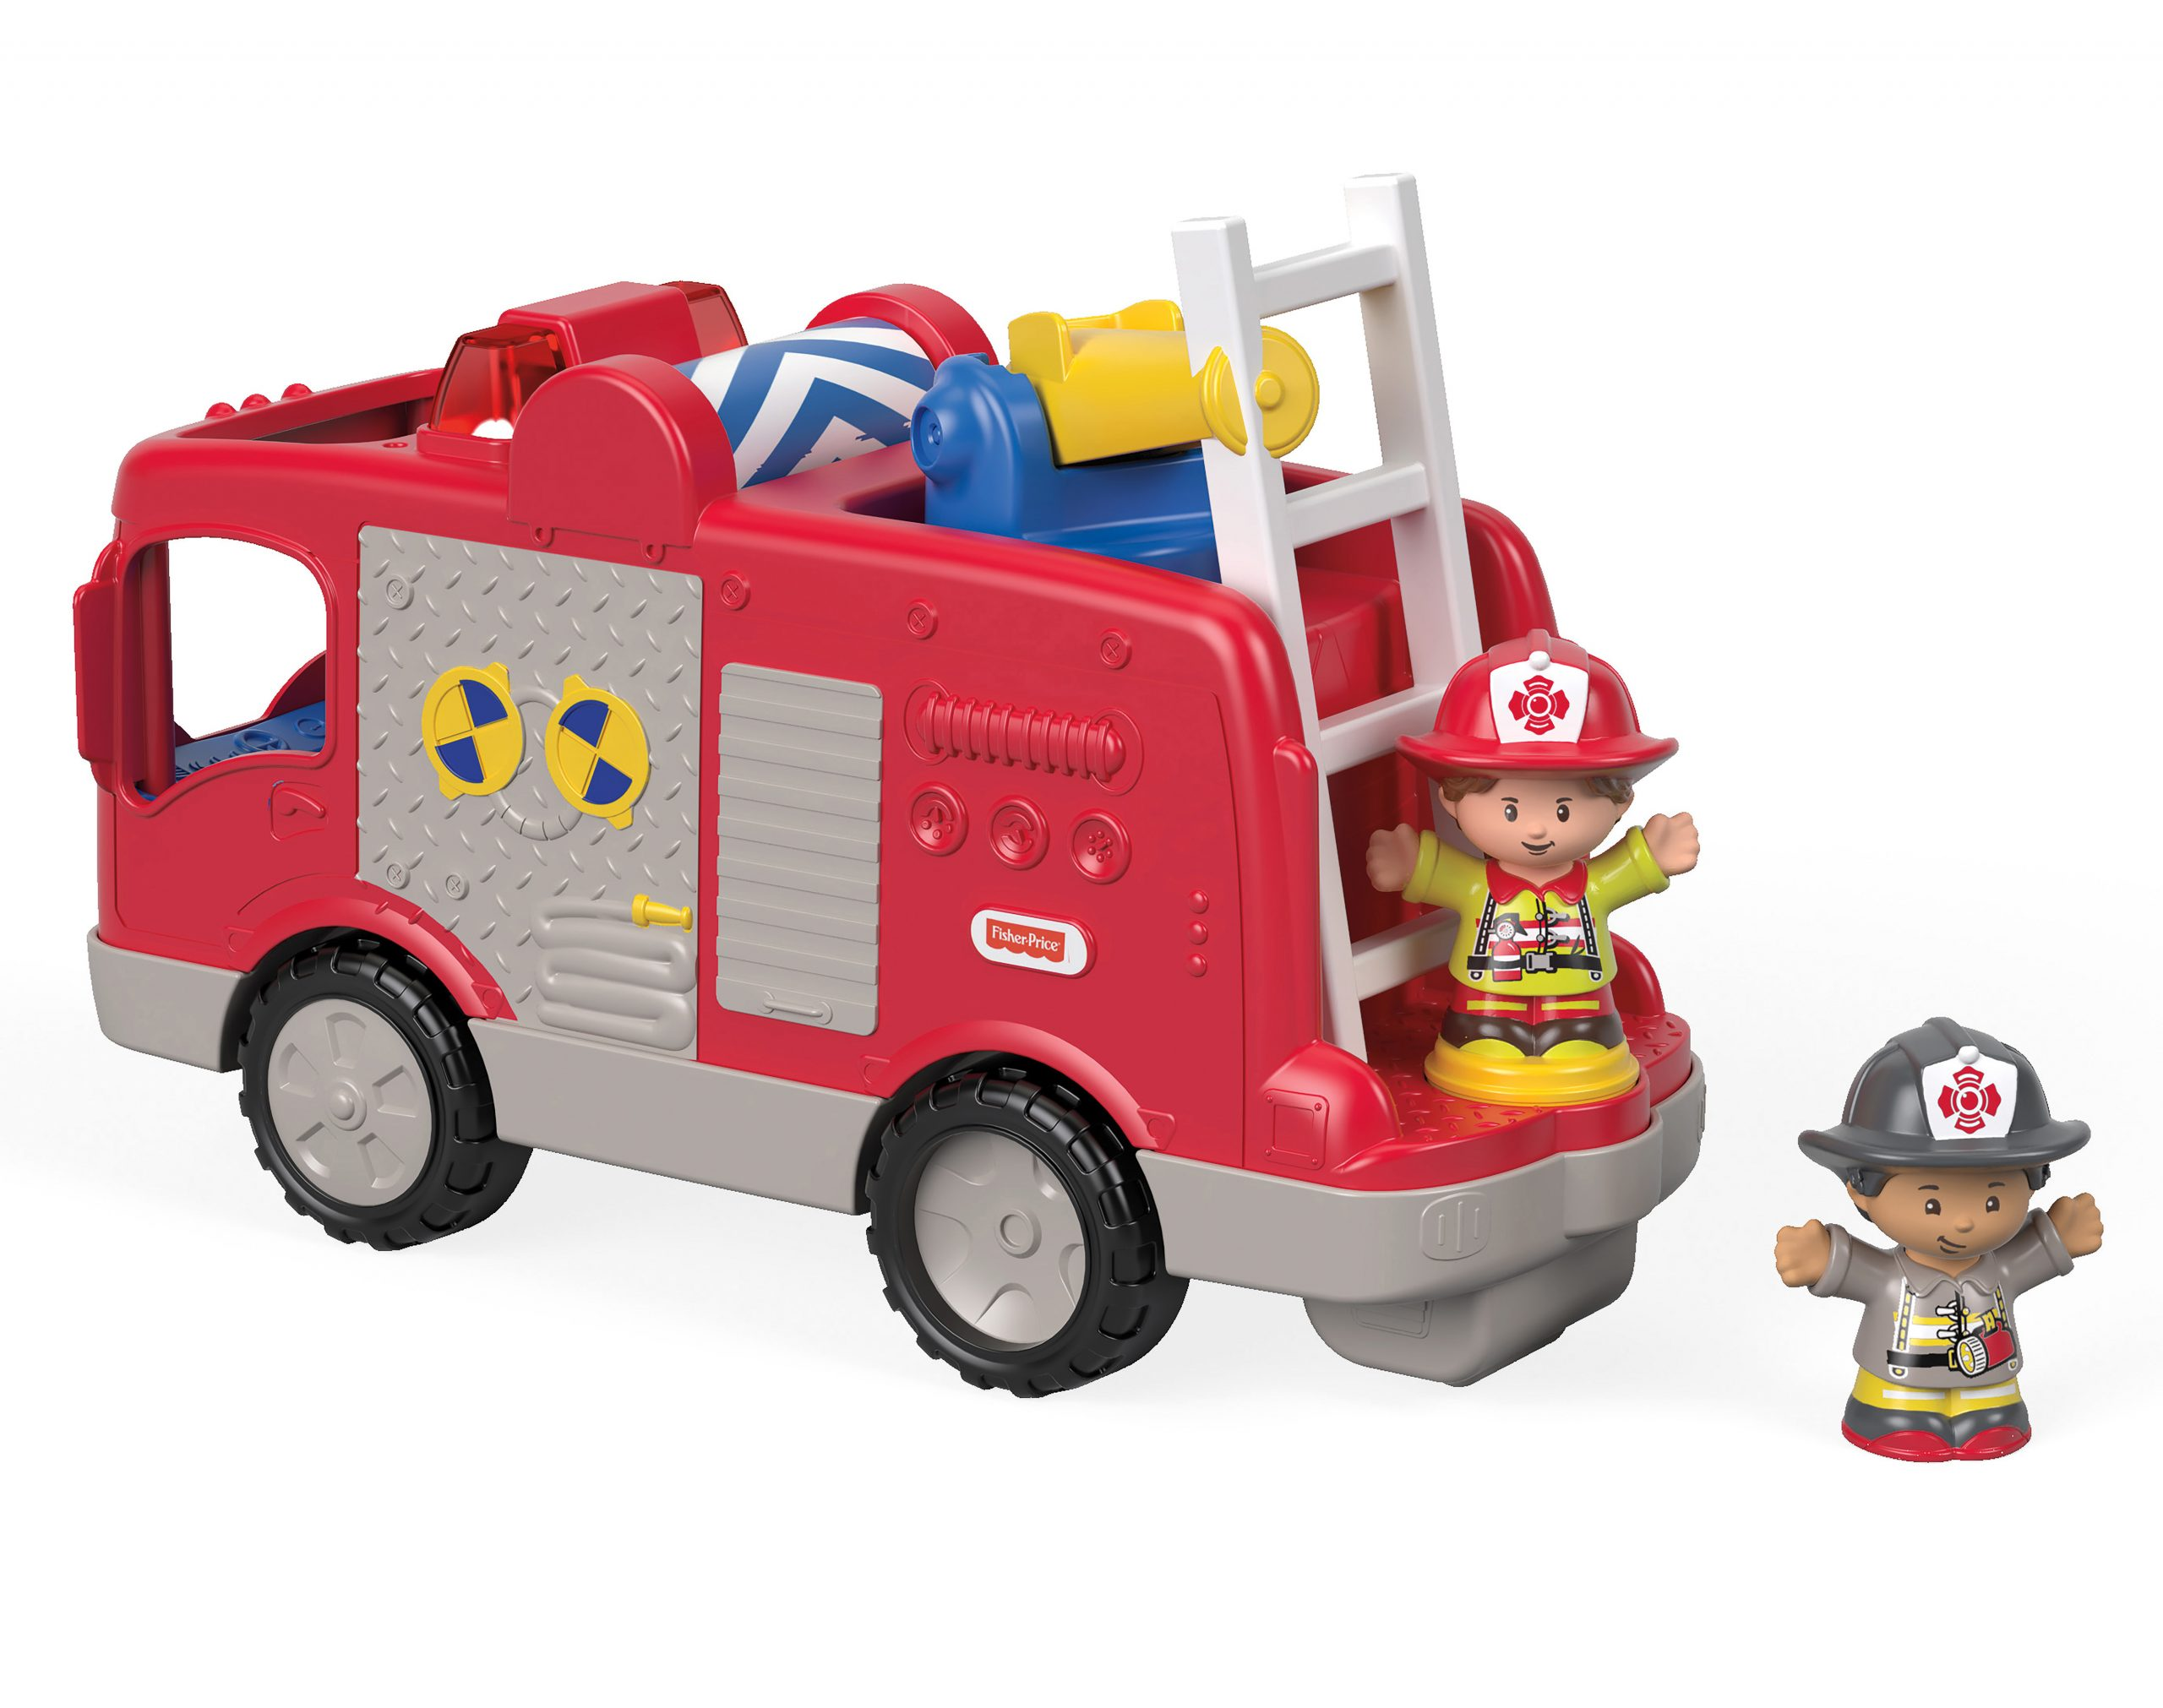 Picture of Little People Helping Others Fire Truck